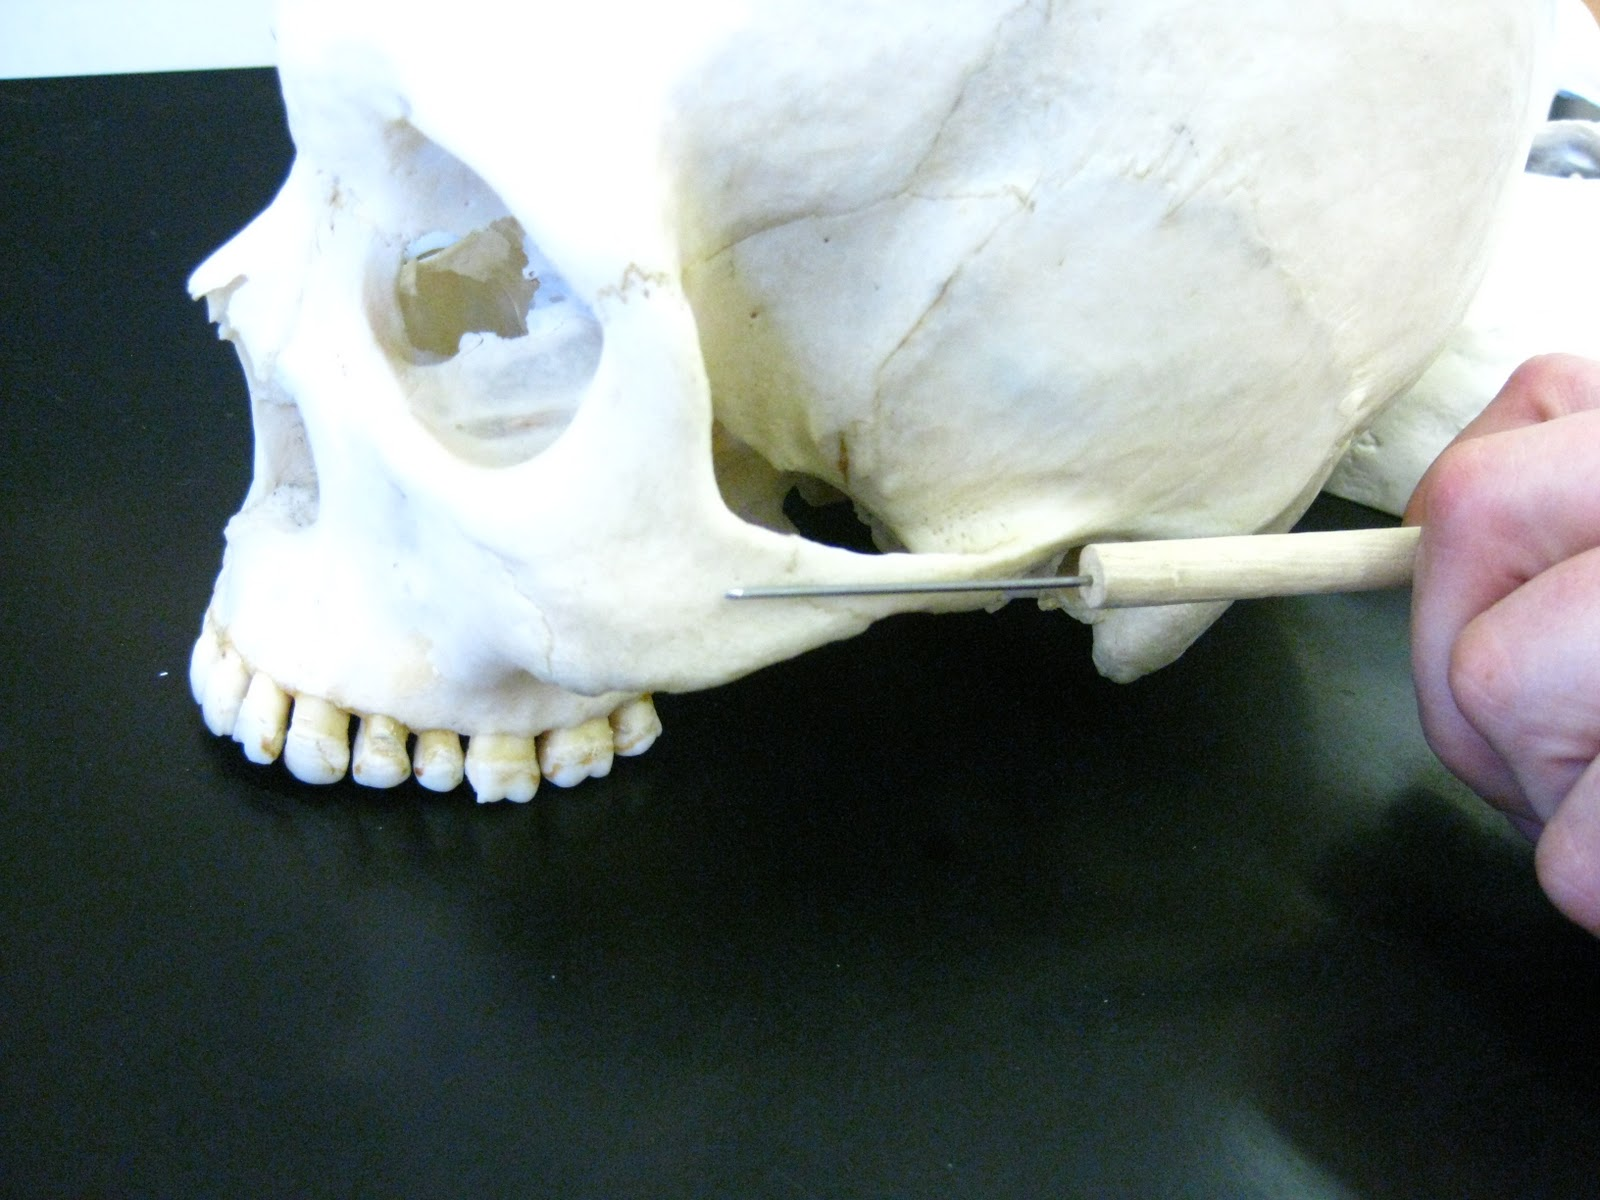 Boned: Human Skull - zygomatic arch (union of zygomatic bone and ...